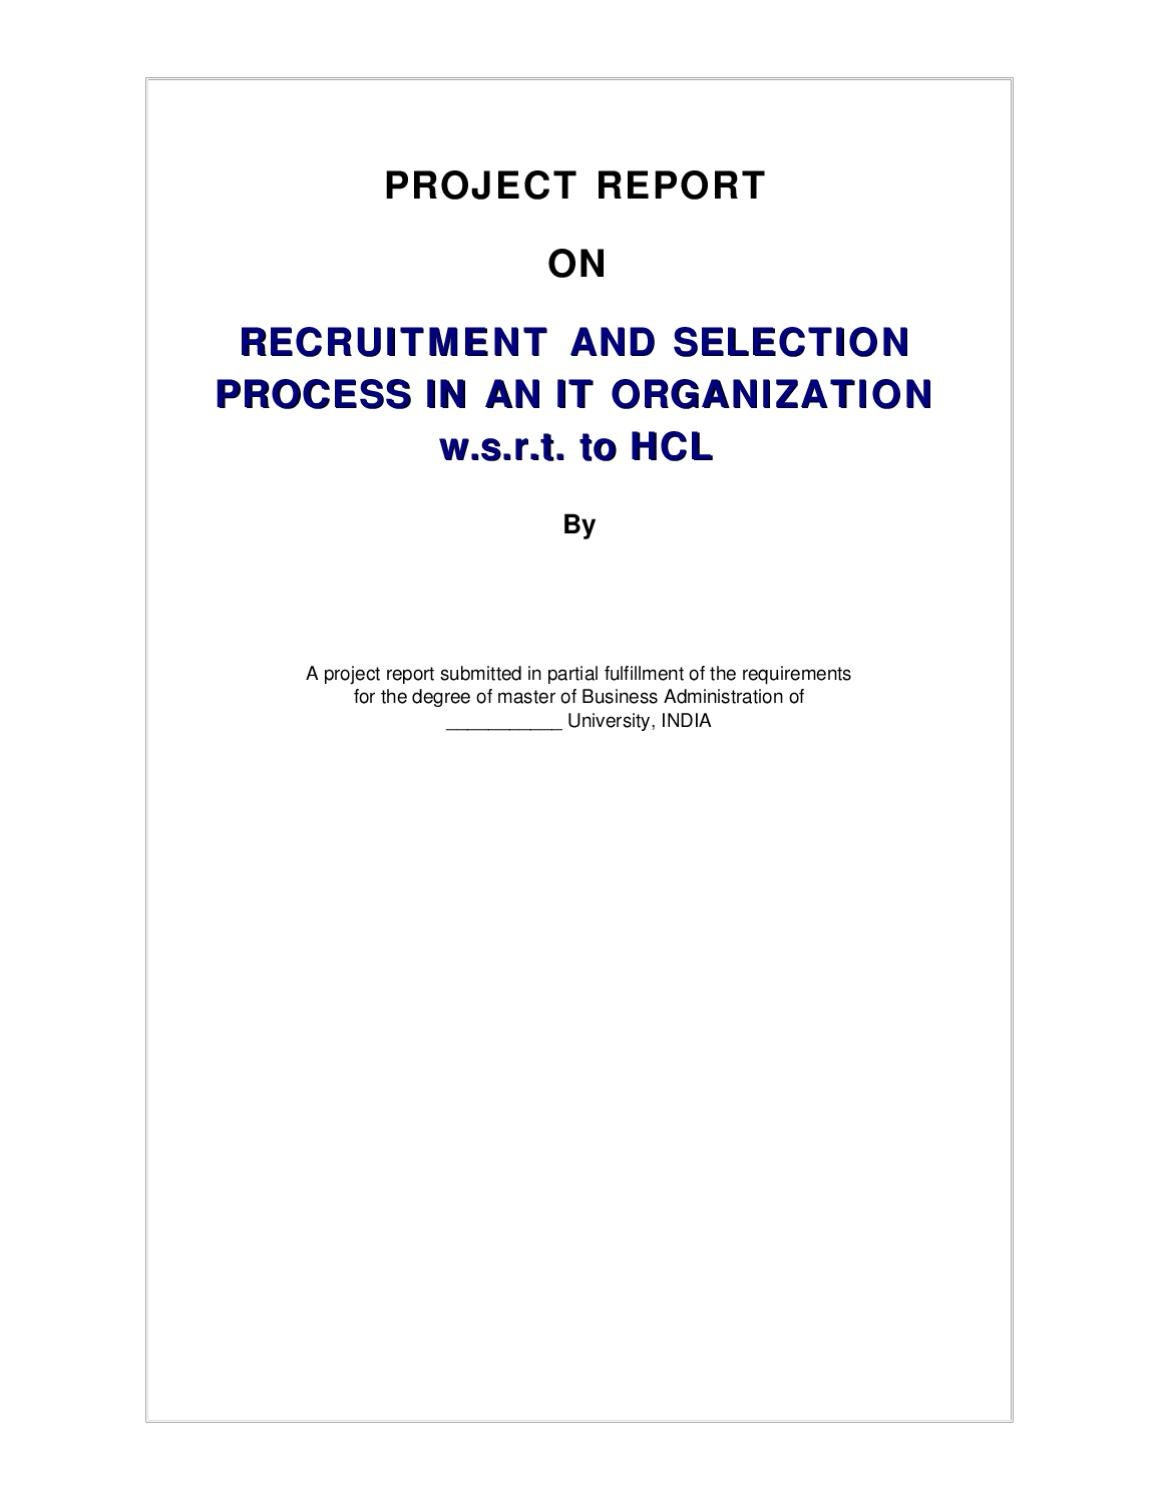 PROJECT REPORT ON RECRUITMENT AND SELECTION PROCESS IN AN IT